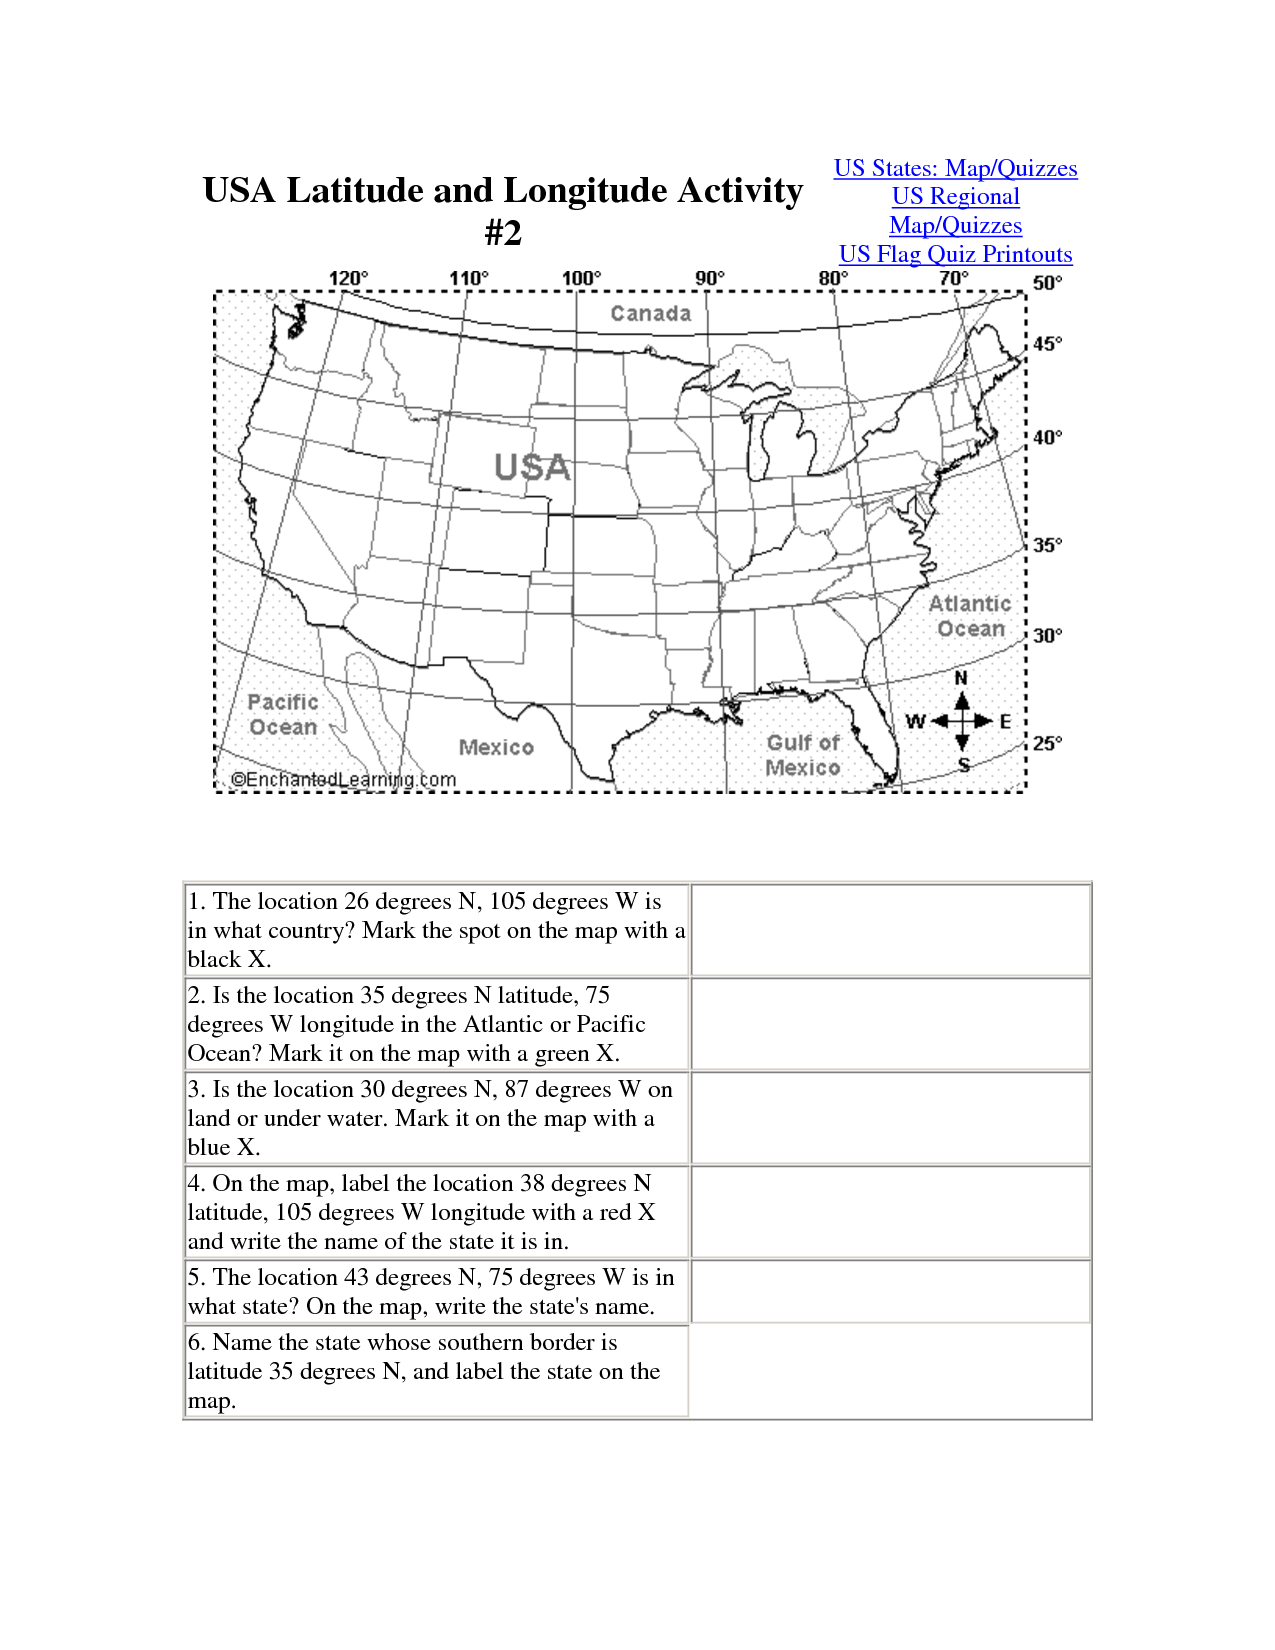 Printable Activities Worksheet Longitude And Lattitude Map